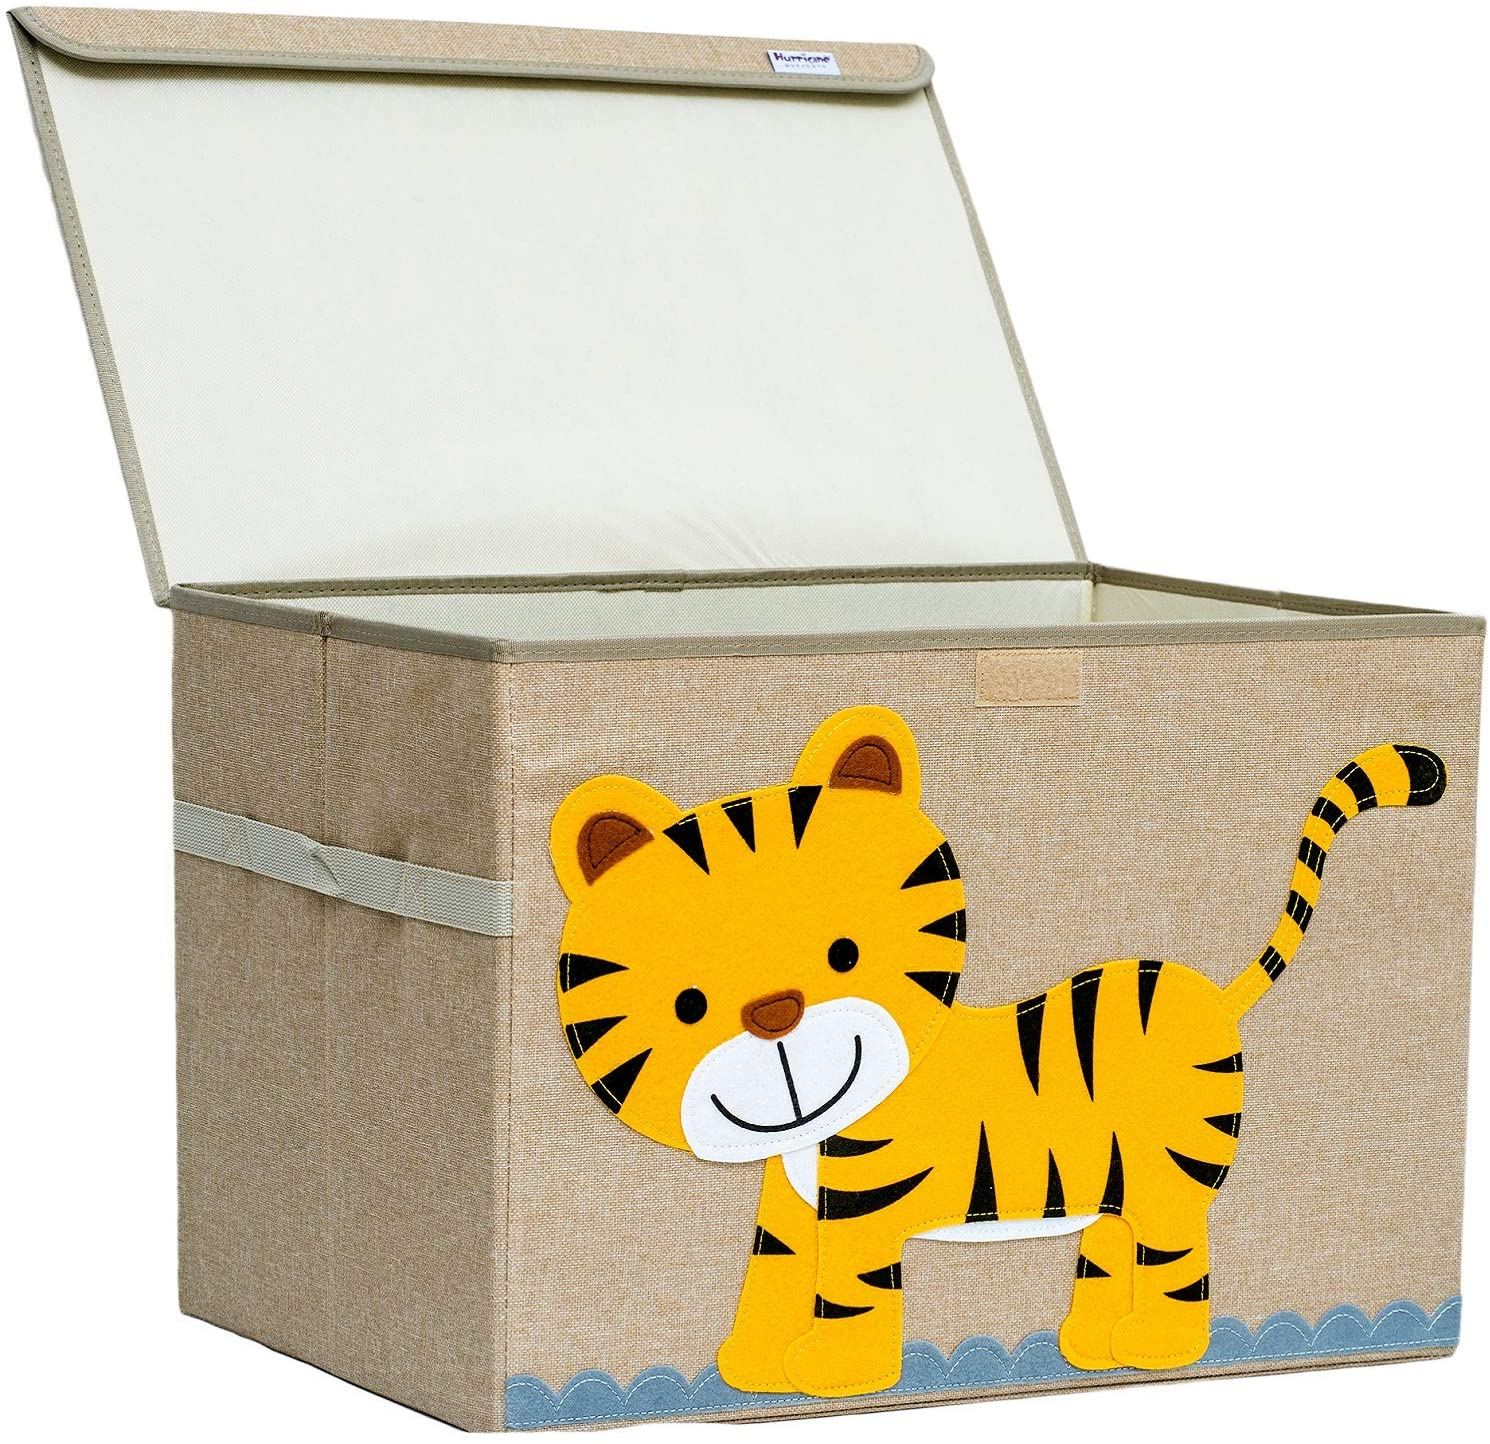 Hurricane Munchkin Large Toy Chest. Canvas Soft Fabric Children Toy Storage Bin Basket with Flip-top Lid. Woodland Forest Safari Toy Box for Kids, Boys, Girls, Toddler and Baby Nursery (Tiger)